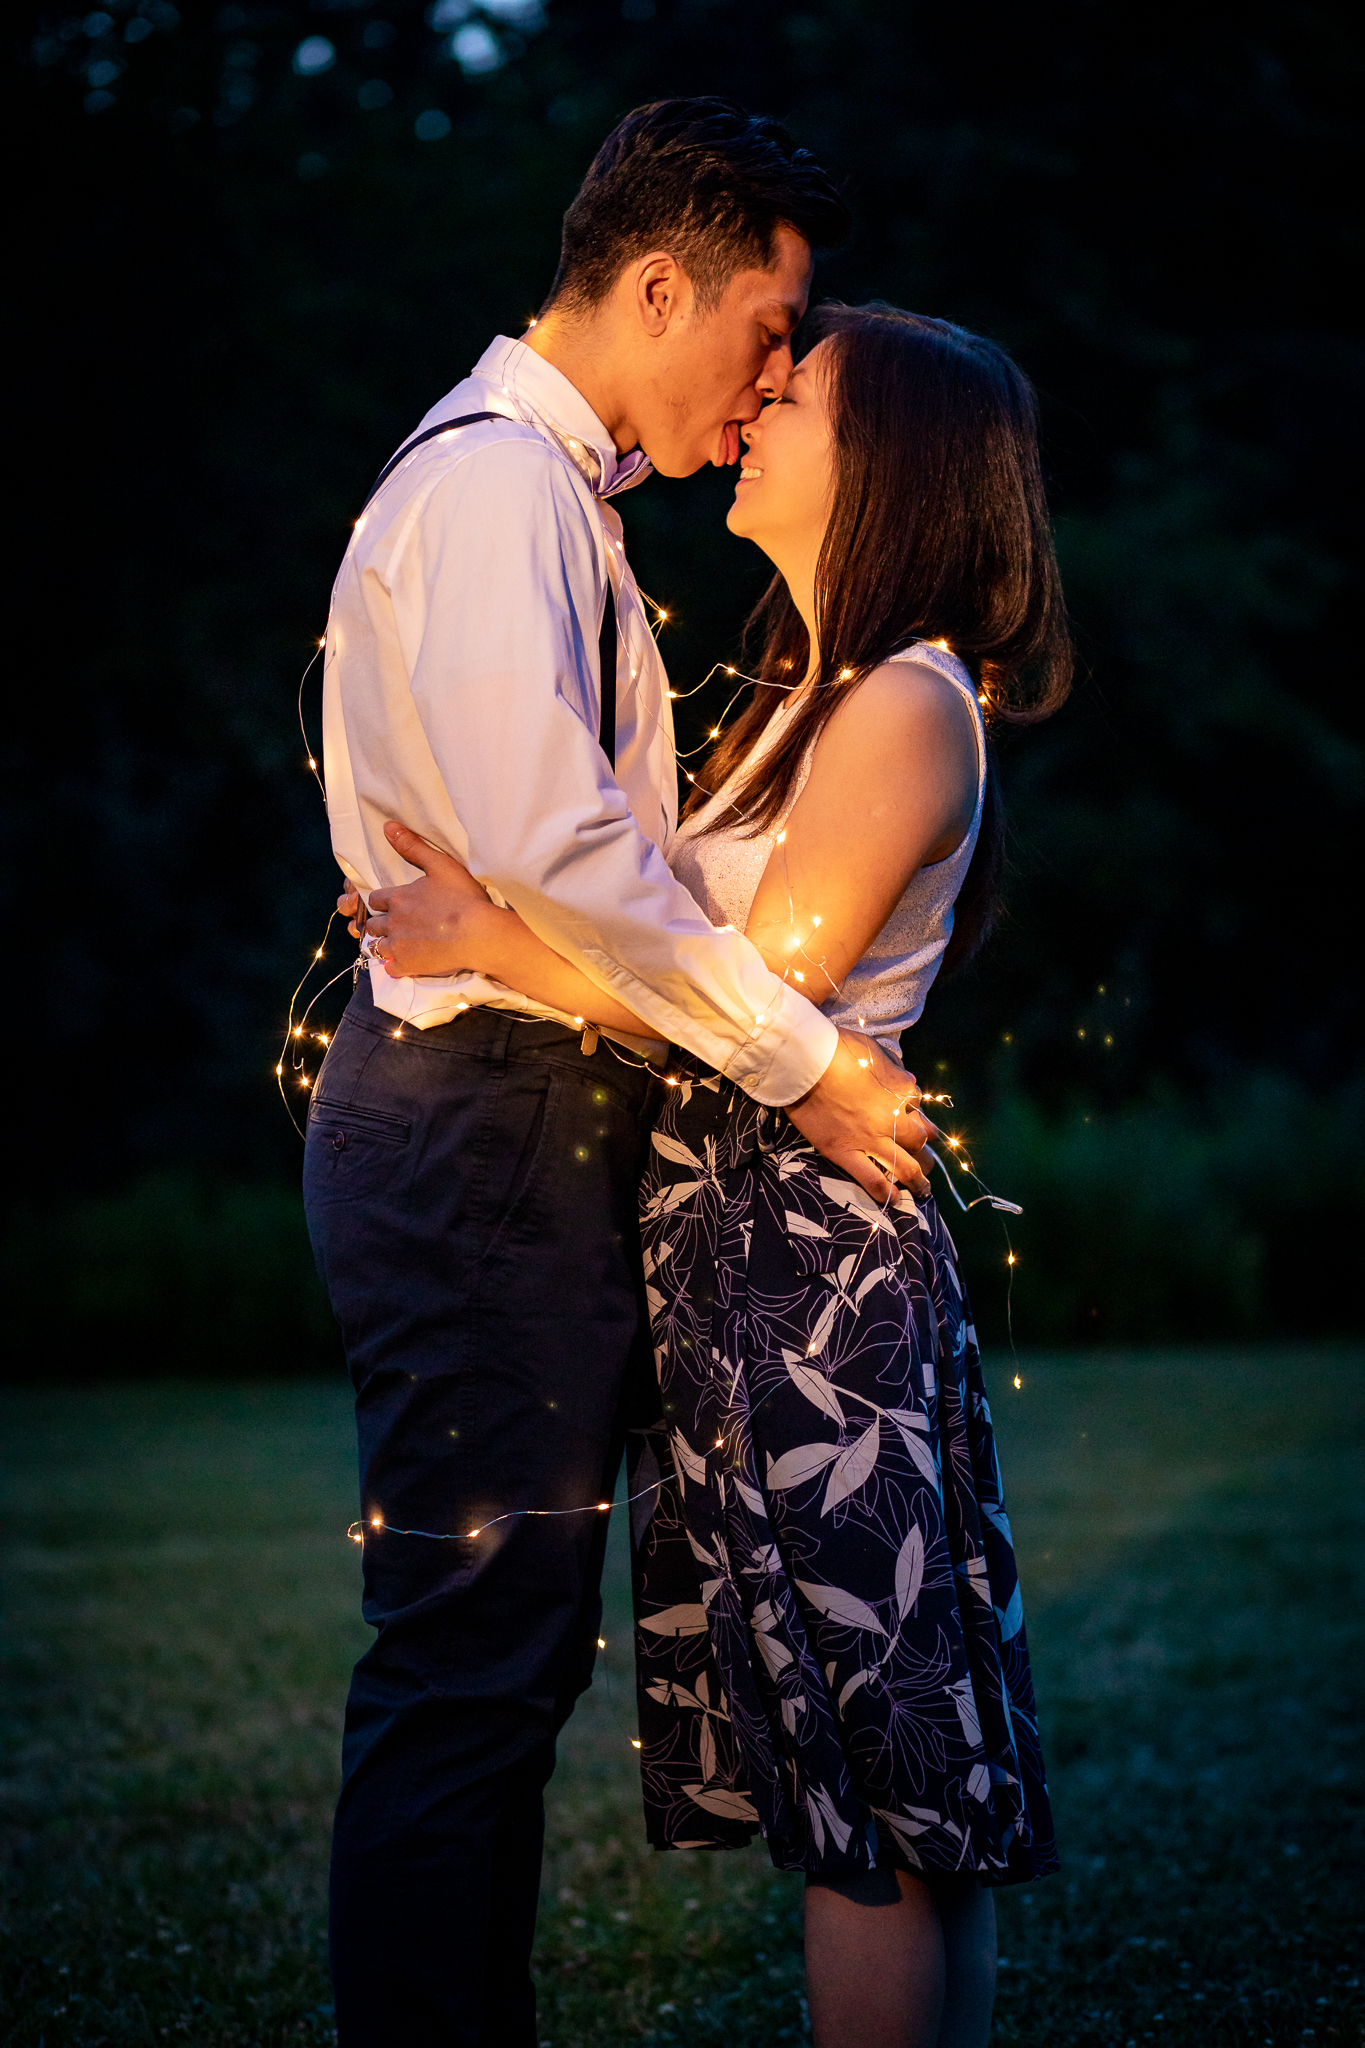 unionville-engagement-photos-16.jpg